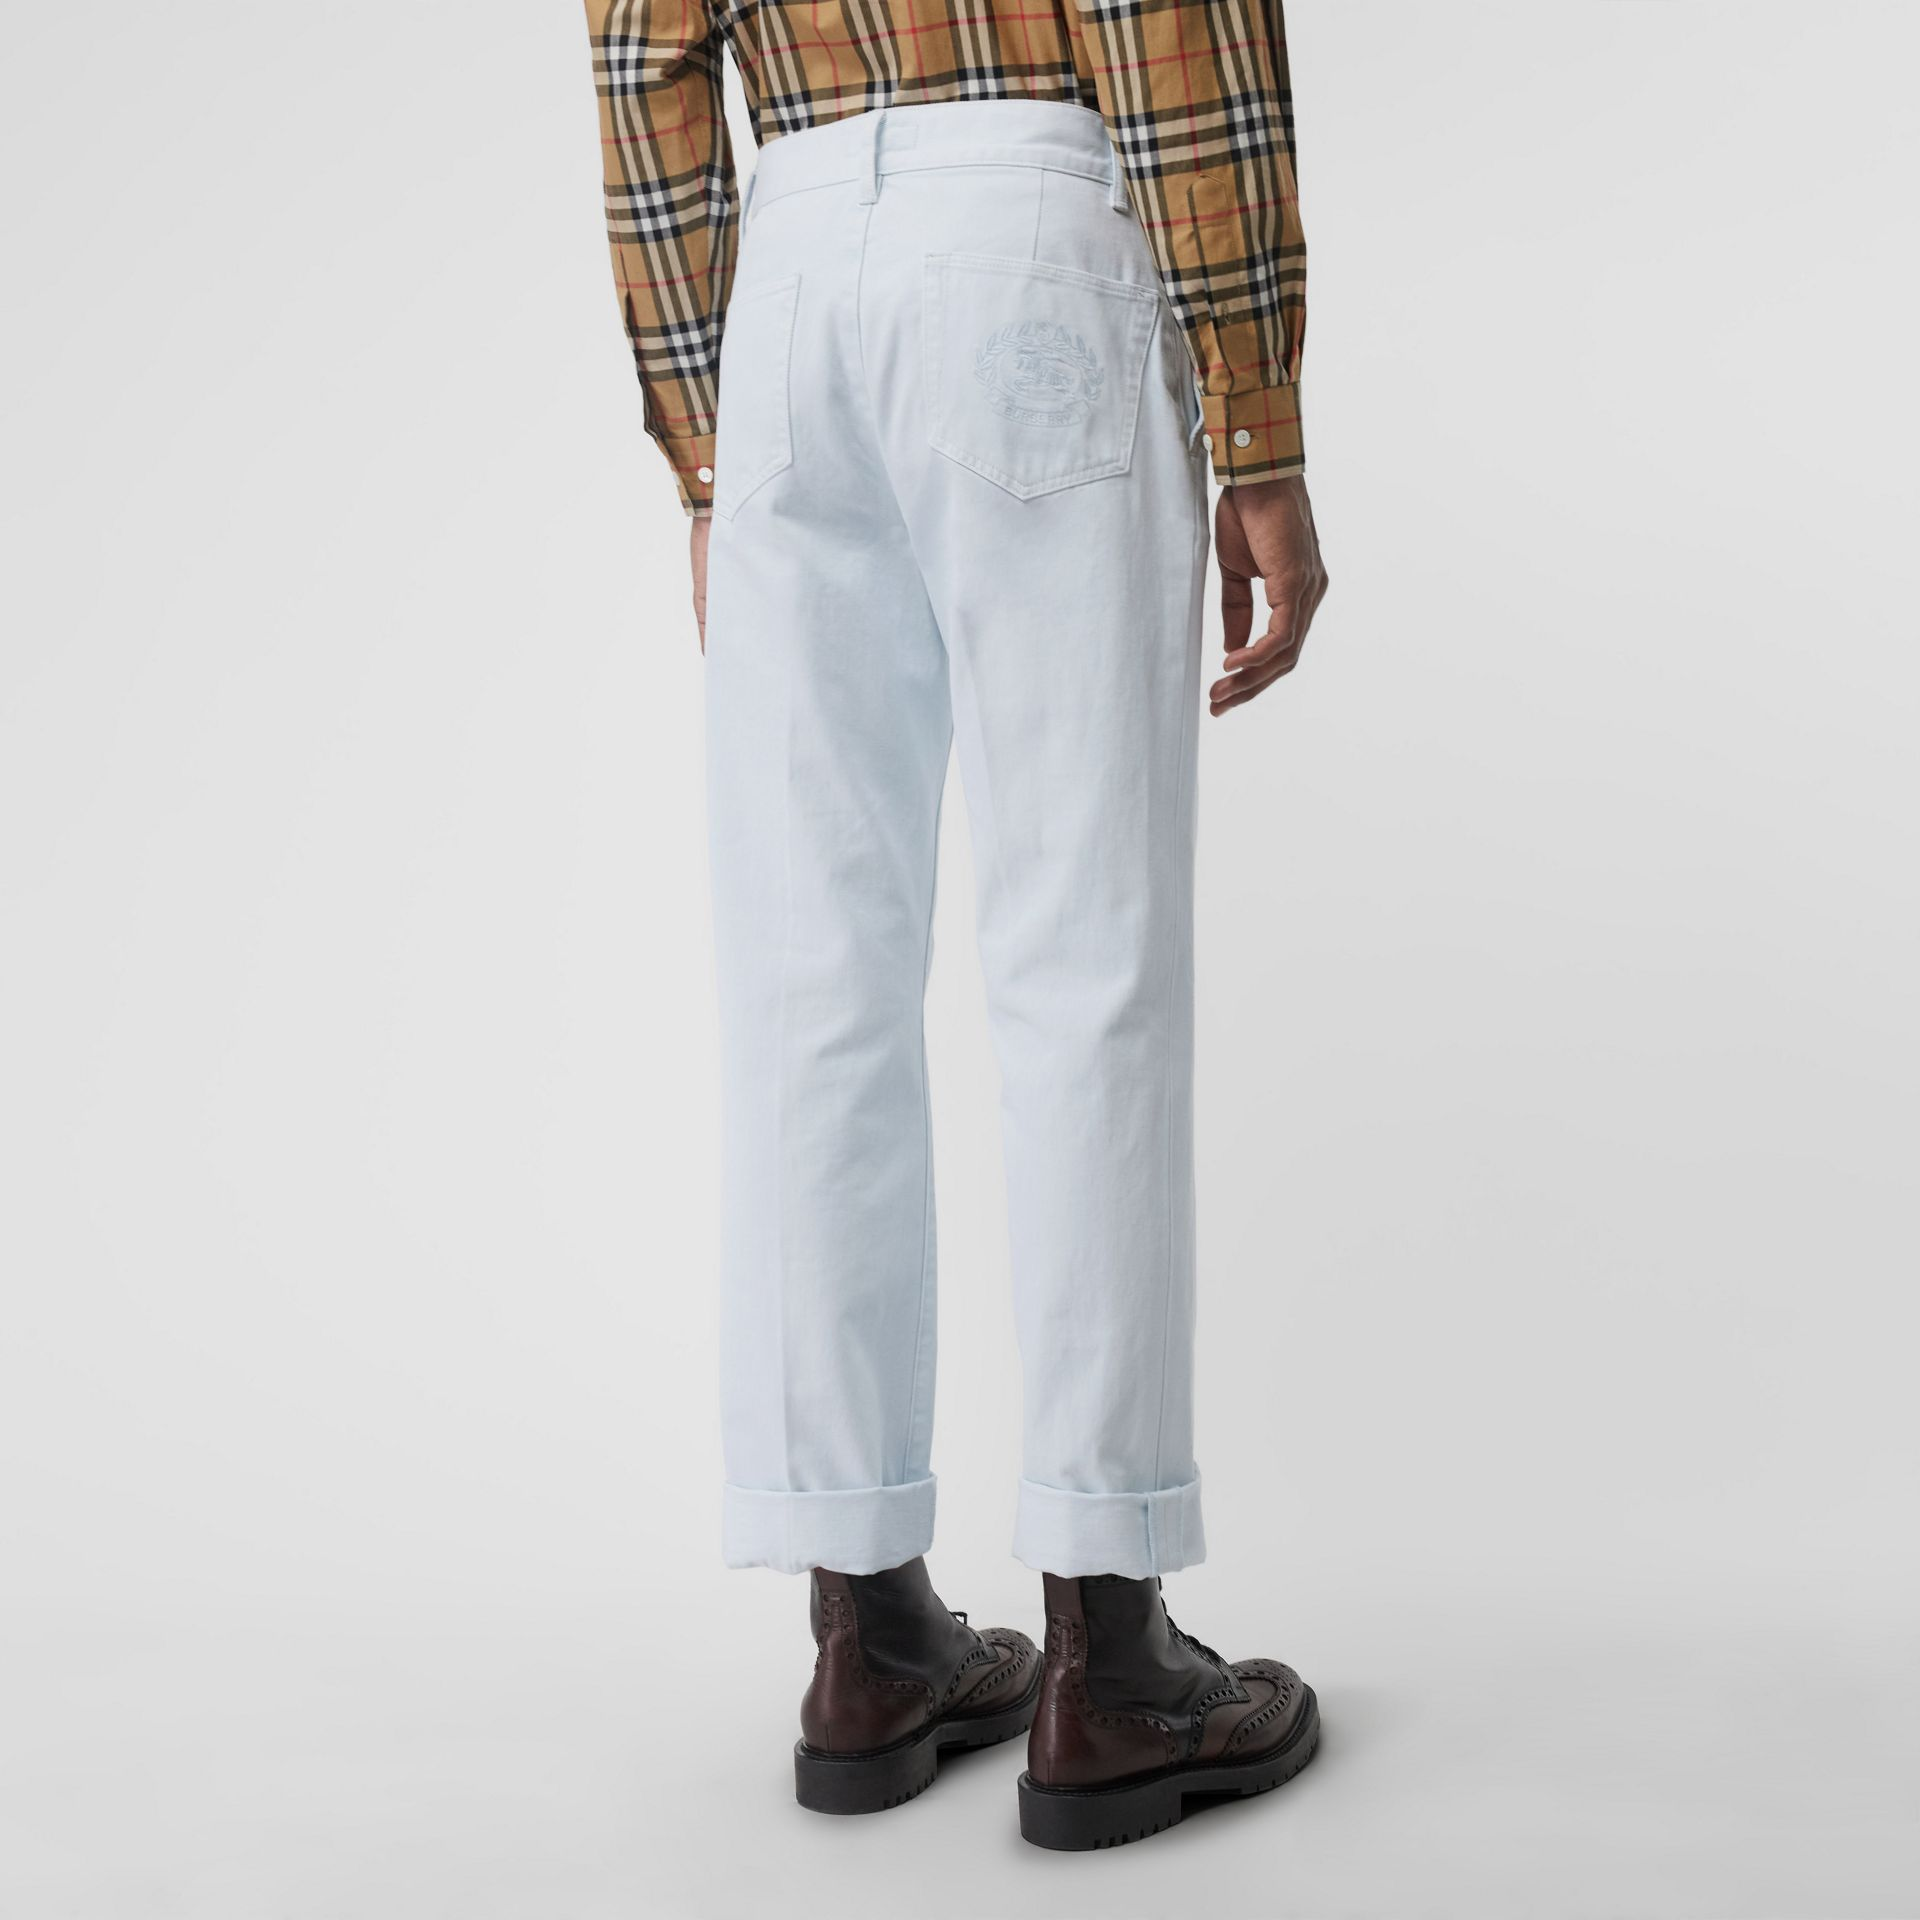 Embroidered Crest Relaxed Fit Jeans in Chalk Blue - Men | Burberry United Kingdom - gallery image 2